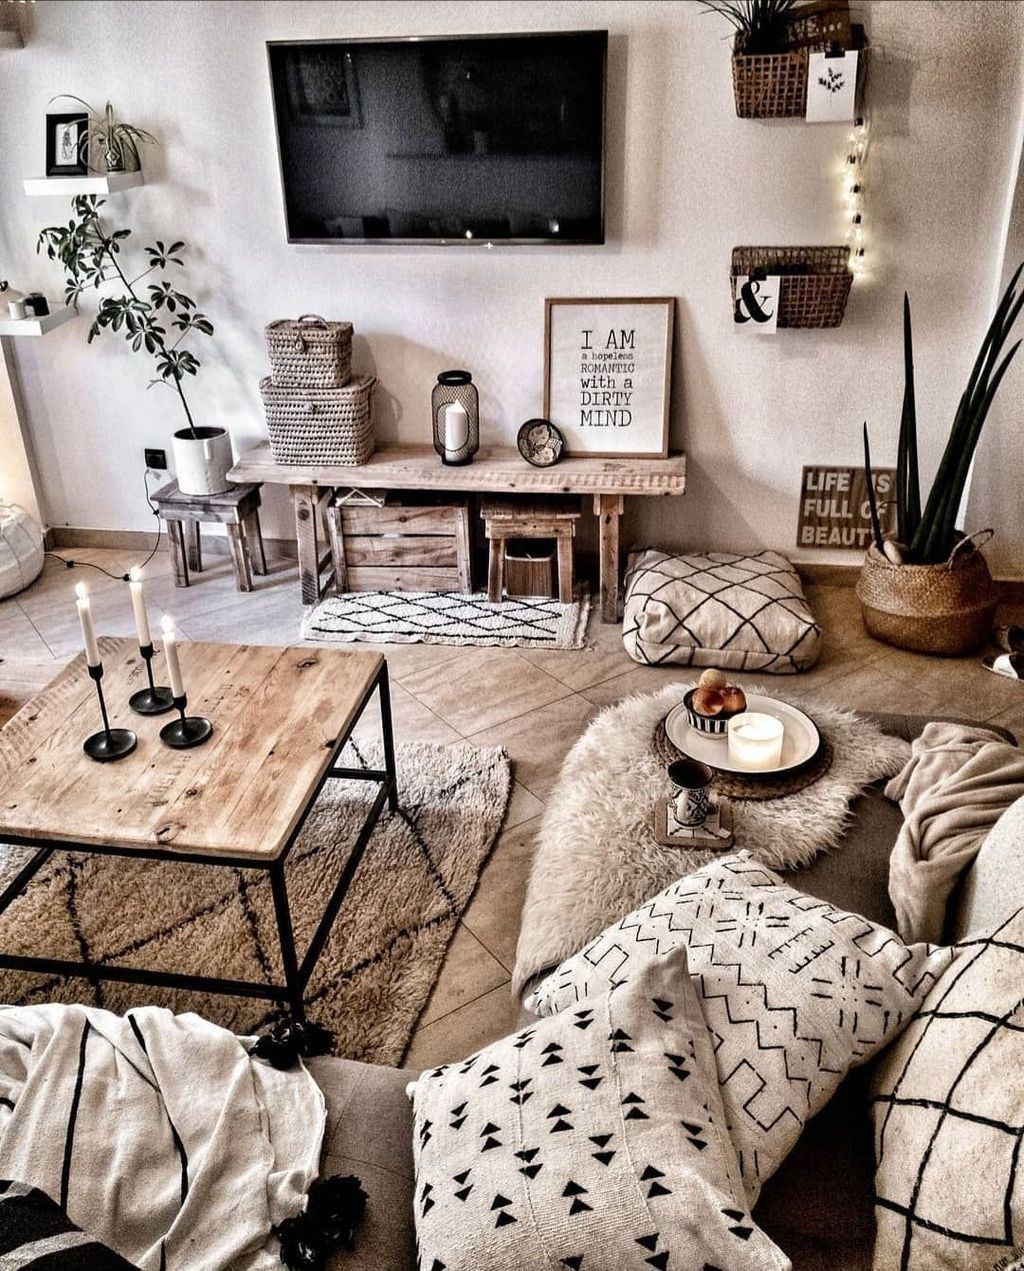 36 Fabulous Bohemian Living Room Decorating Ideas images